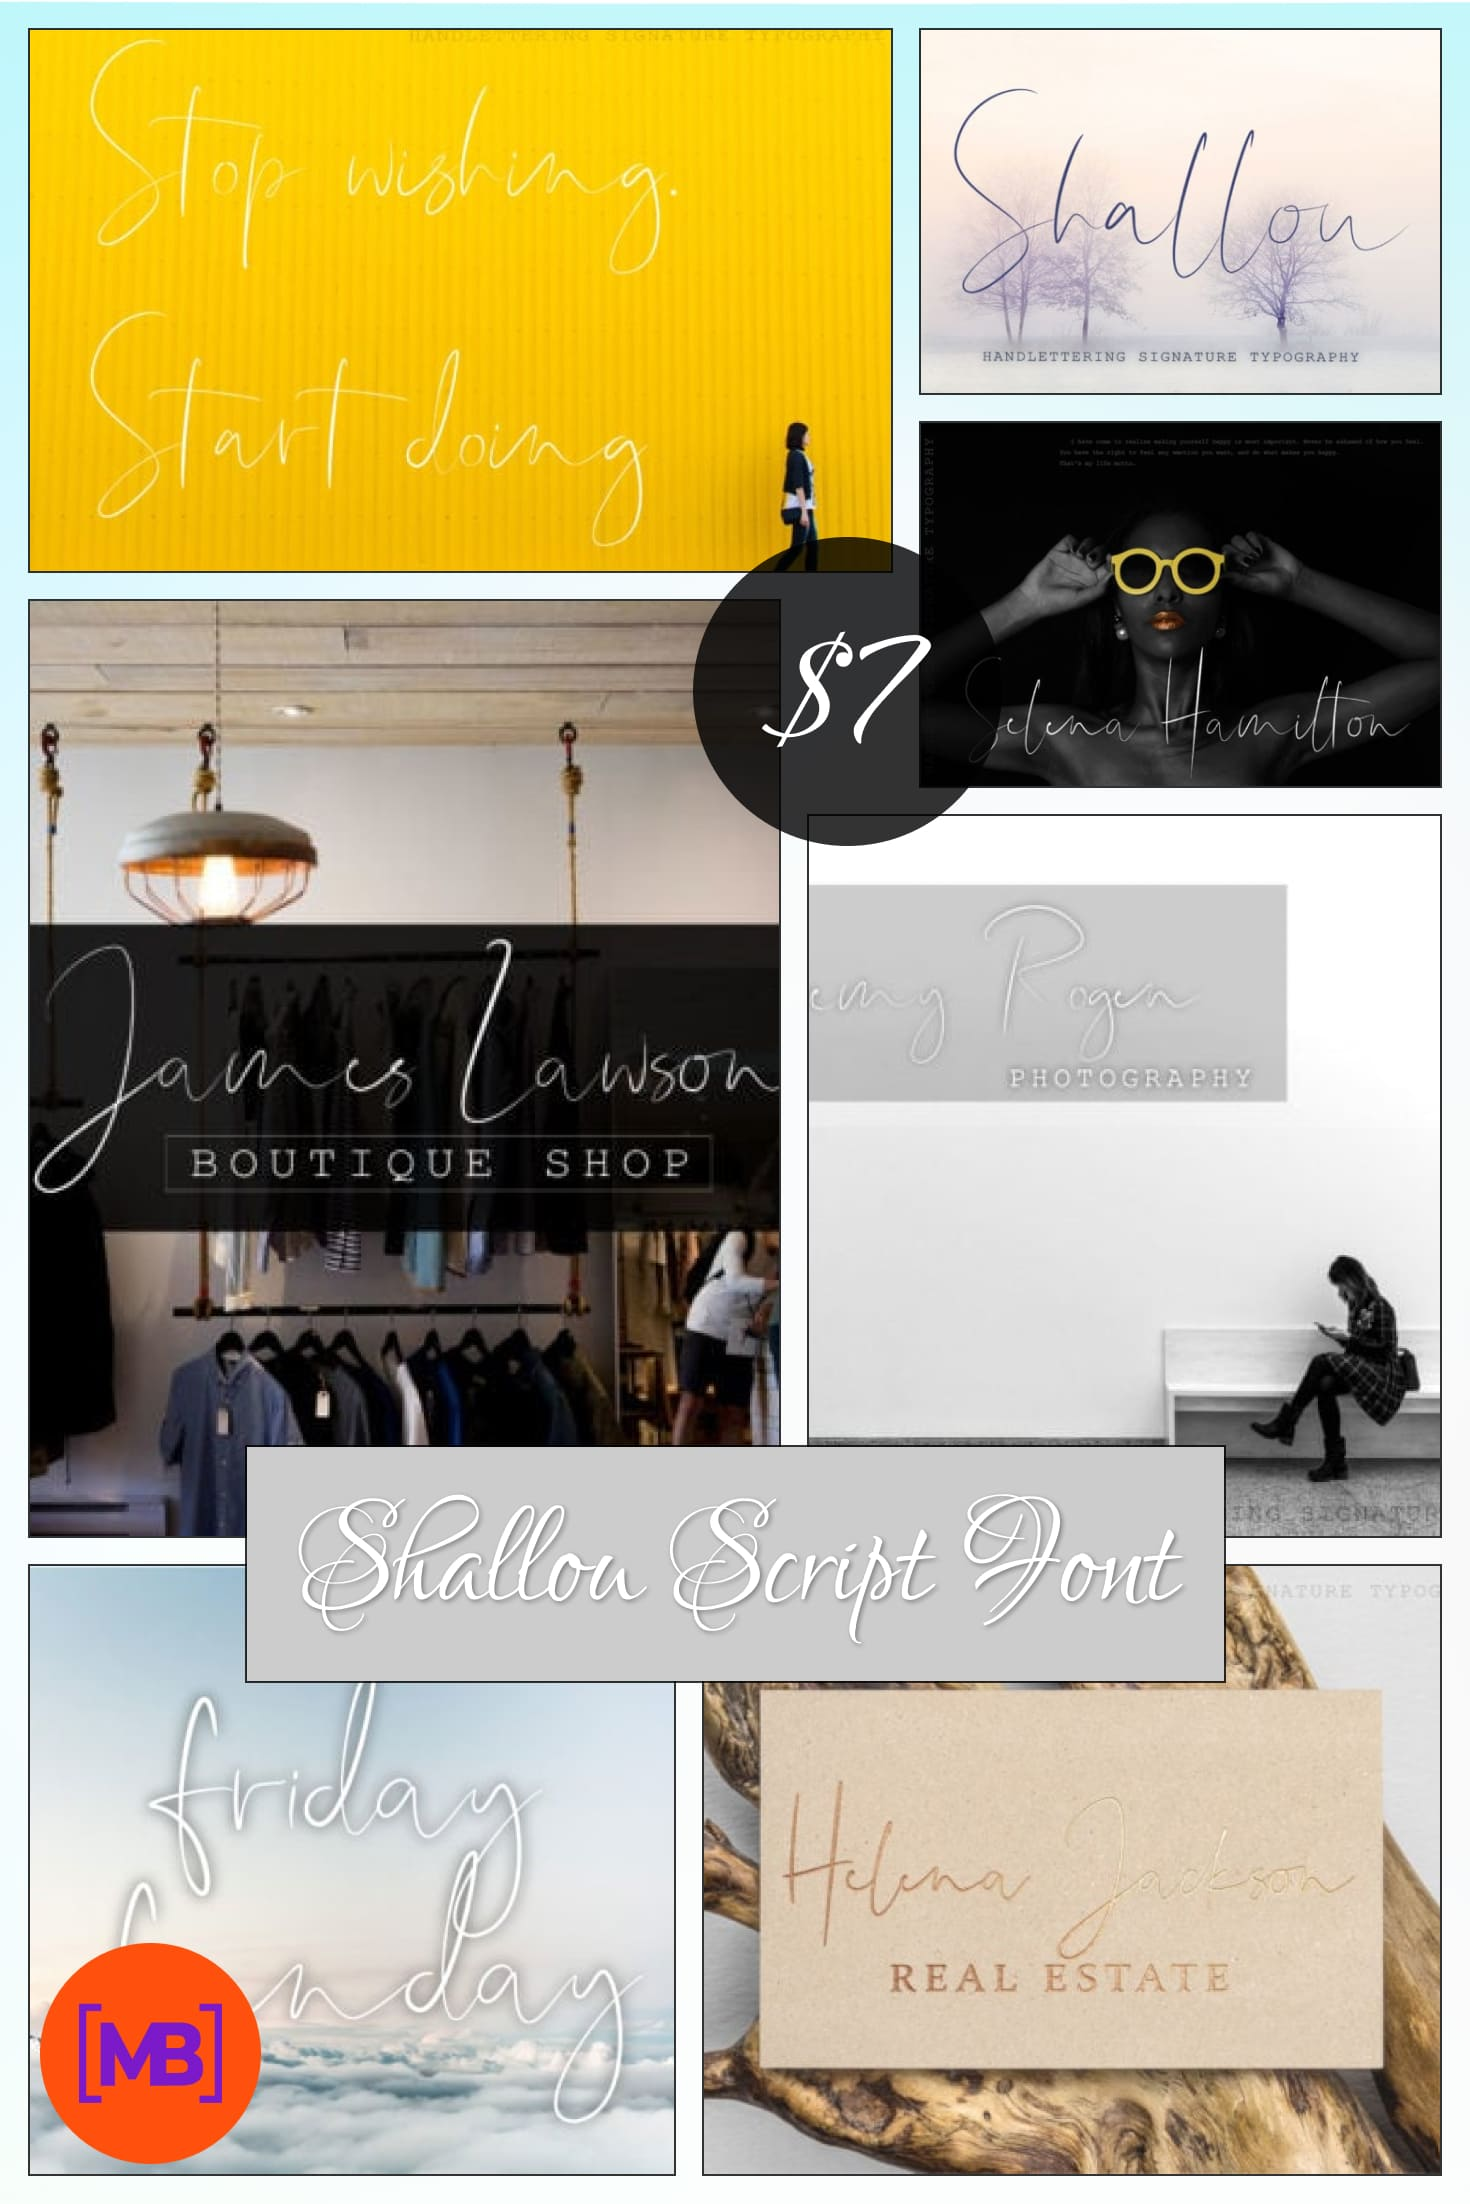 Shallou Script Font - $7 ONLY. Collage Image.